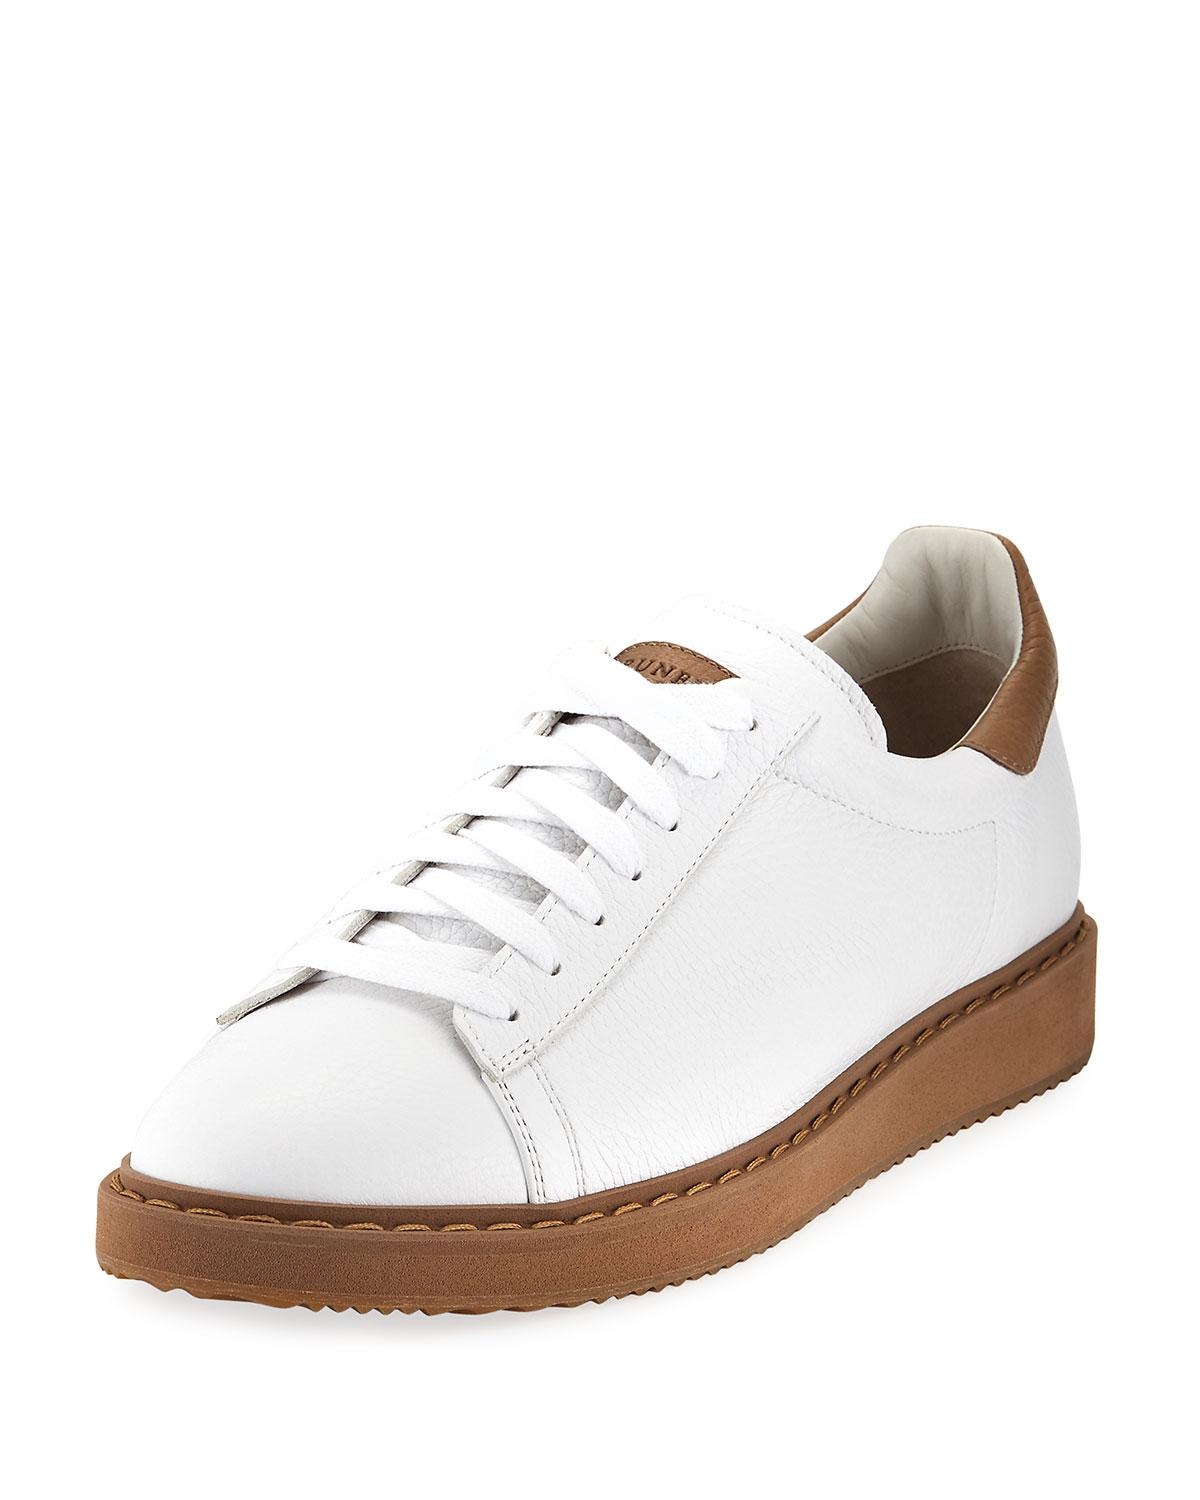 Brunello Cucinelli Metallic Low-Top Sneakers for sale official site online store cheap sale best place 17xVxQ